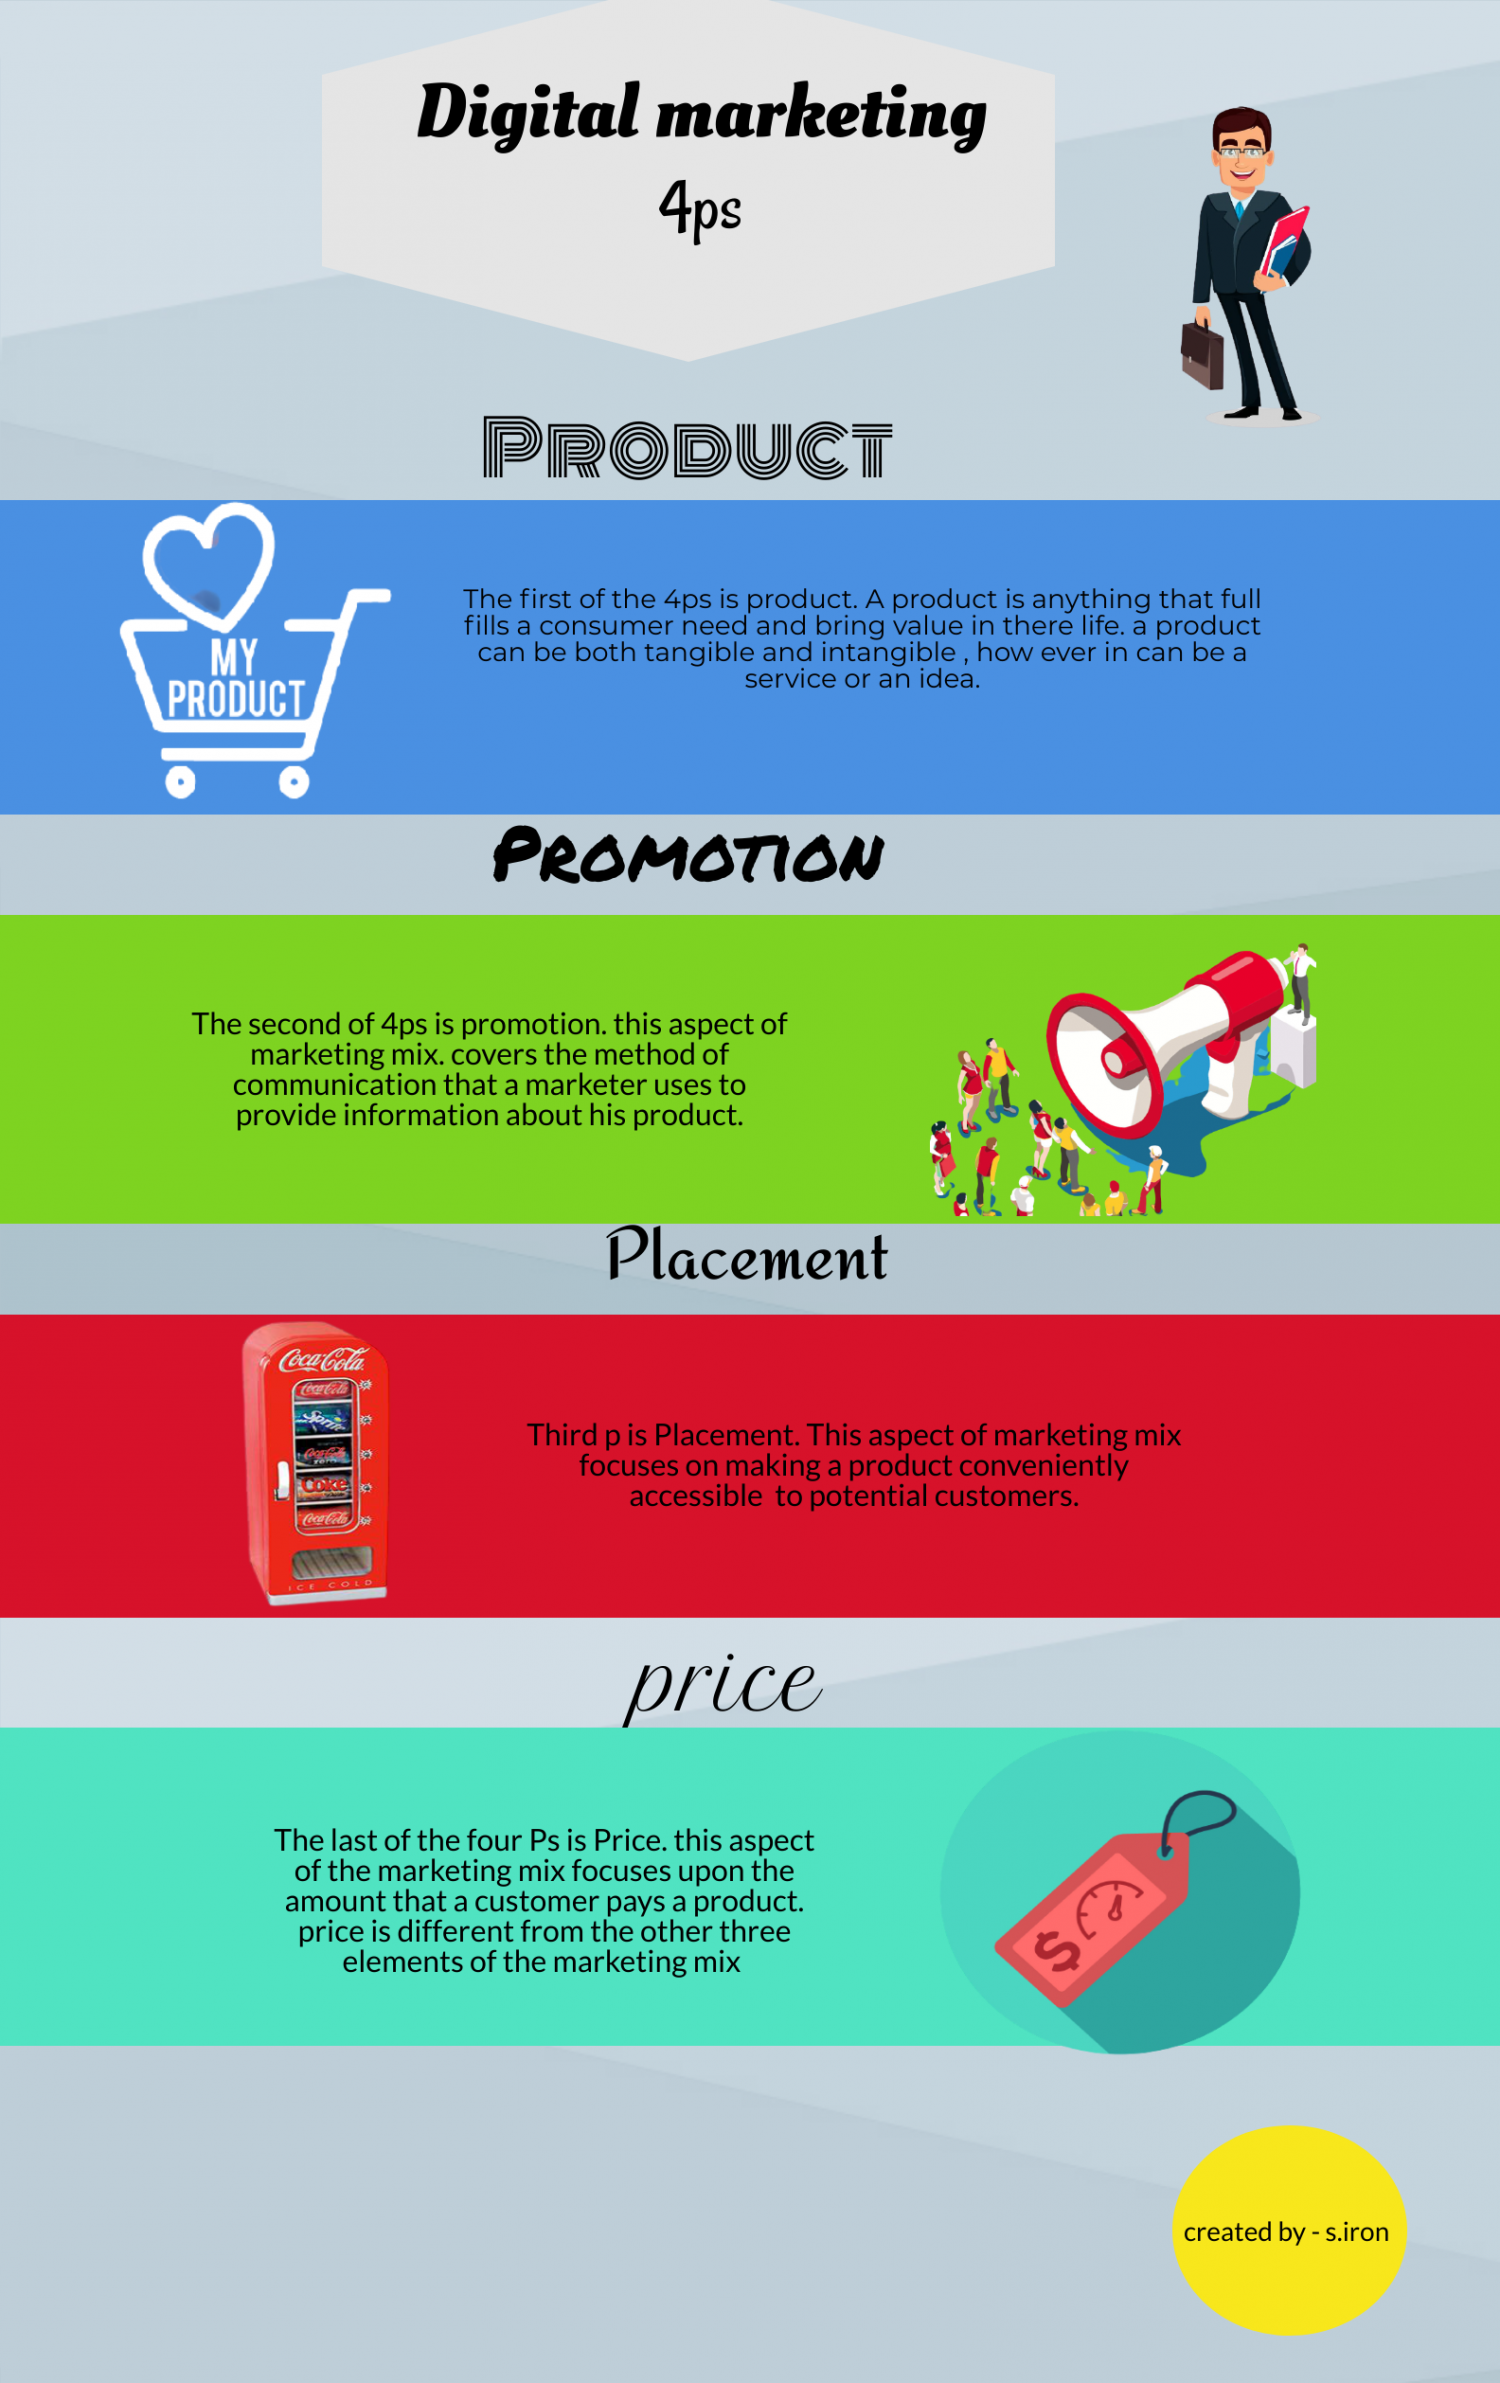 digital marketing 4ps Infographic